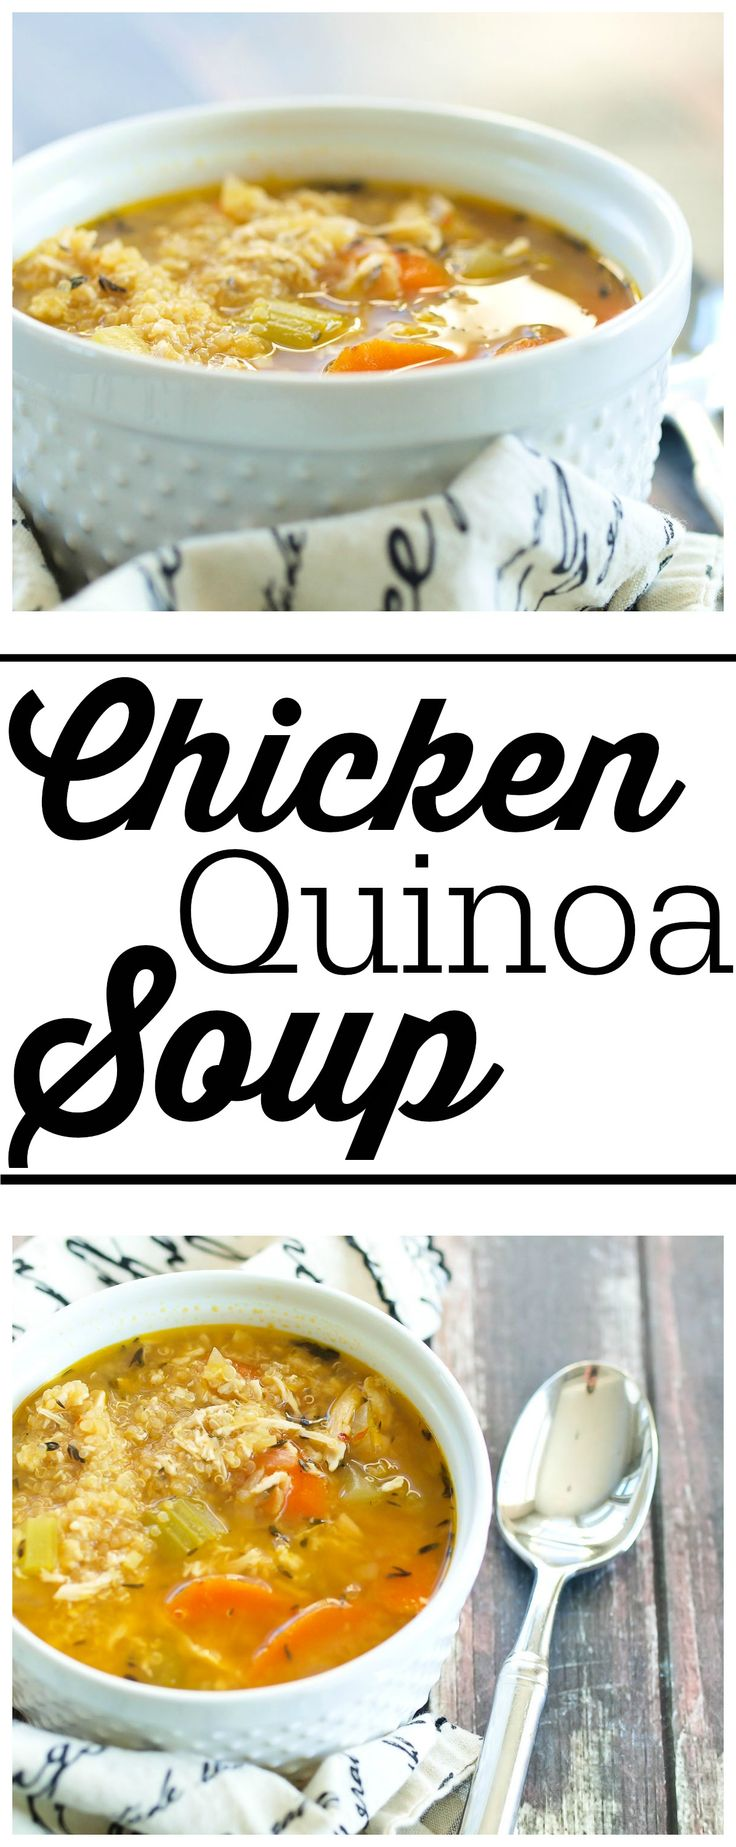 Clean Eating:  #Clean #Eating ~ Chicken Quinoa Soup is an updated classic.  All the flavor of chicken noodle soup, but with healthy quinoa in place of the noodles.